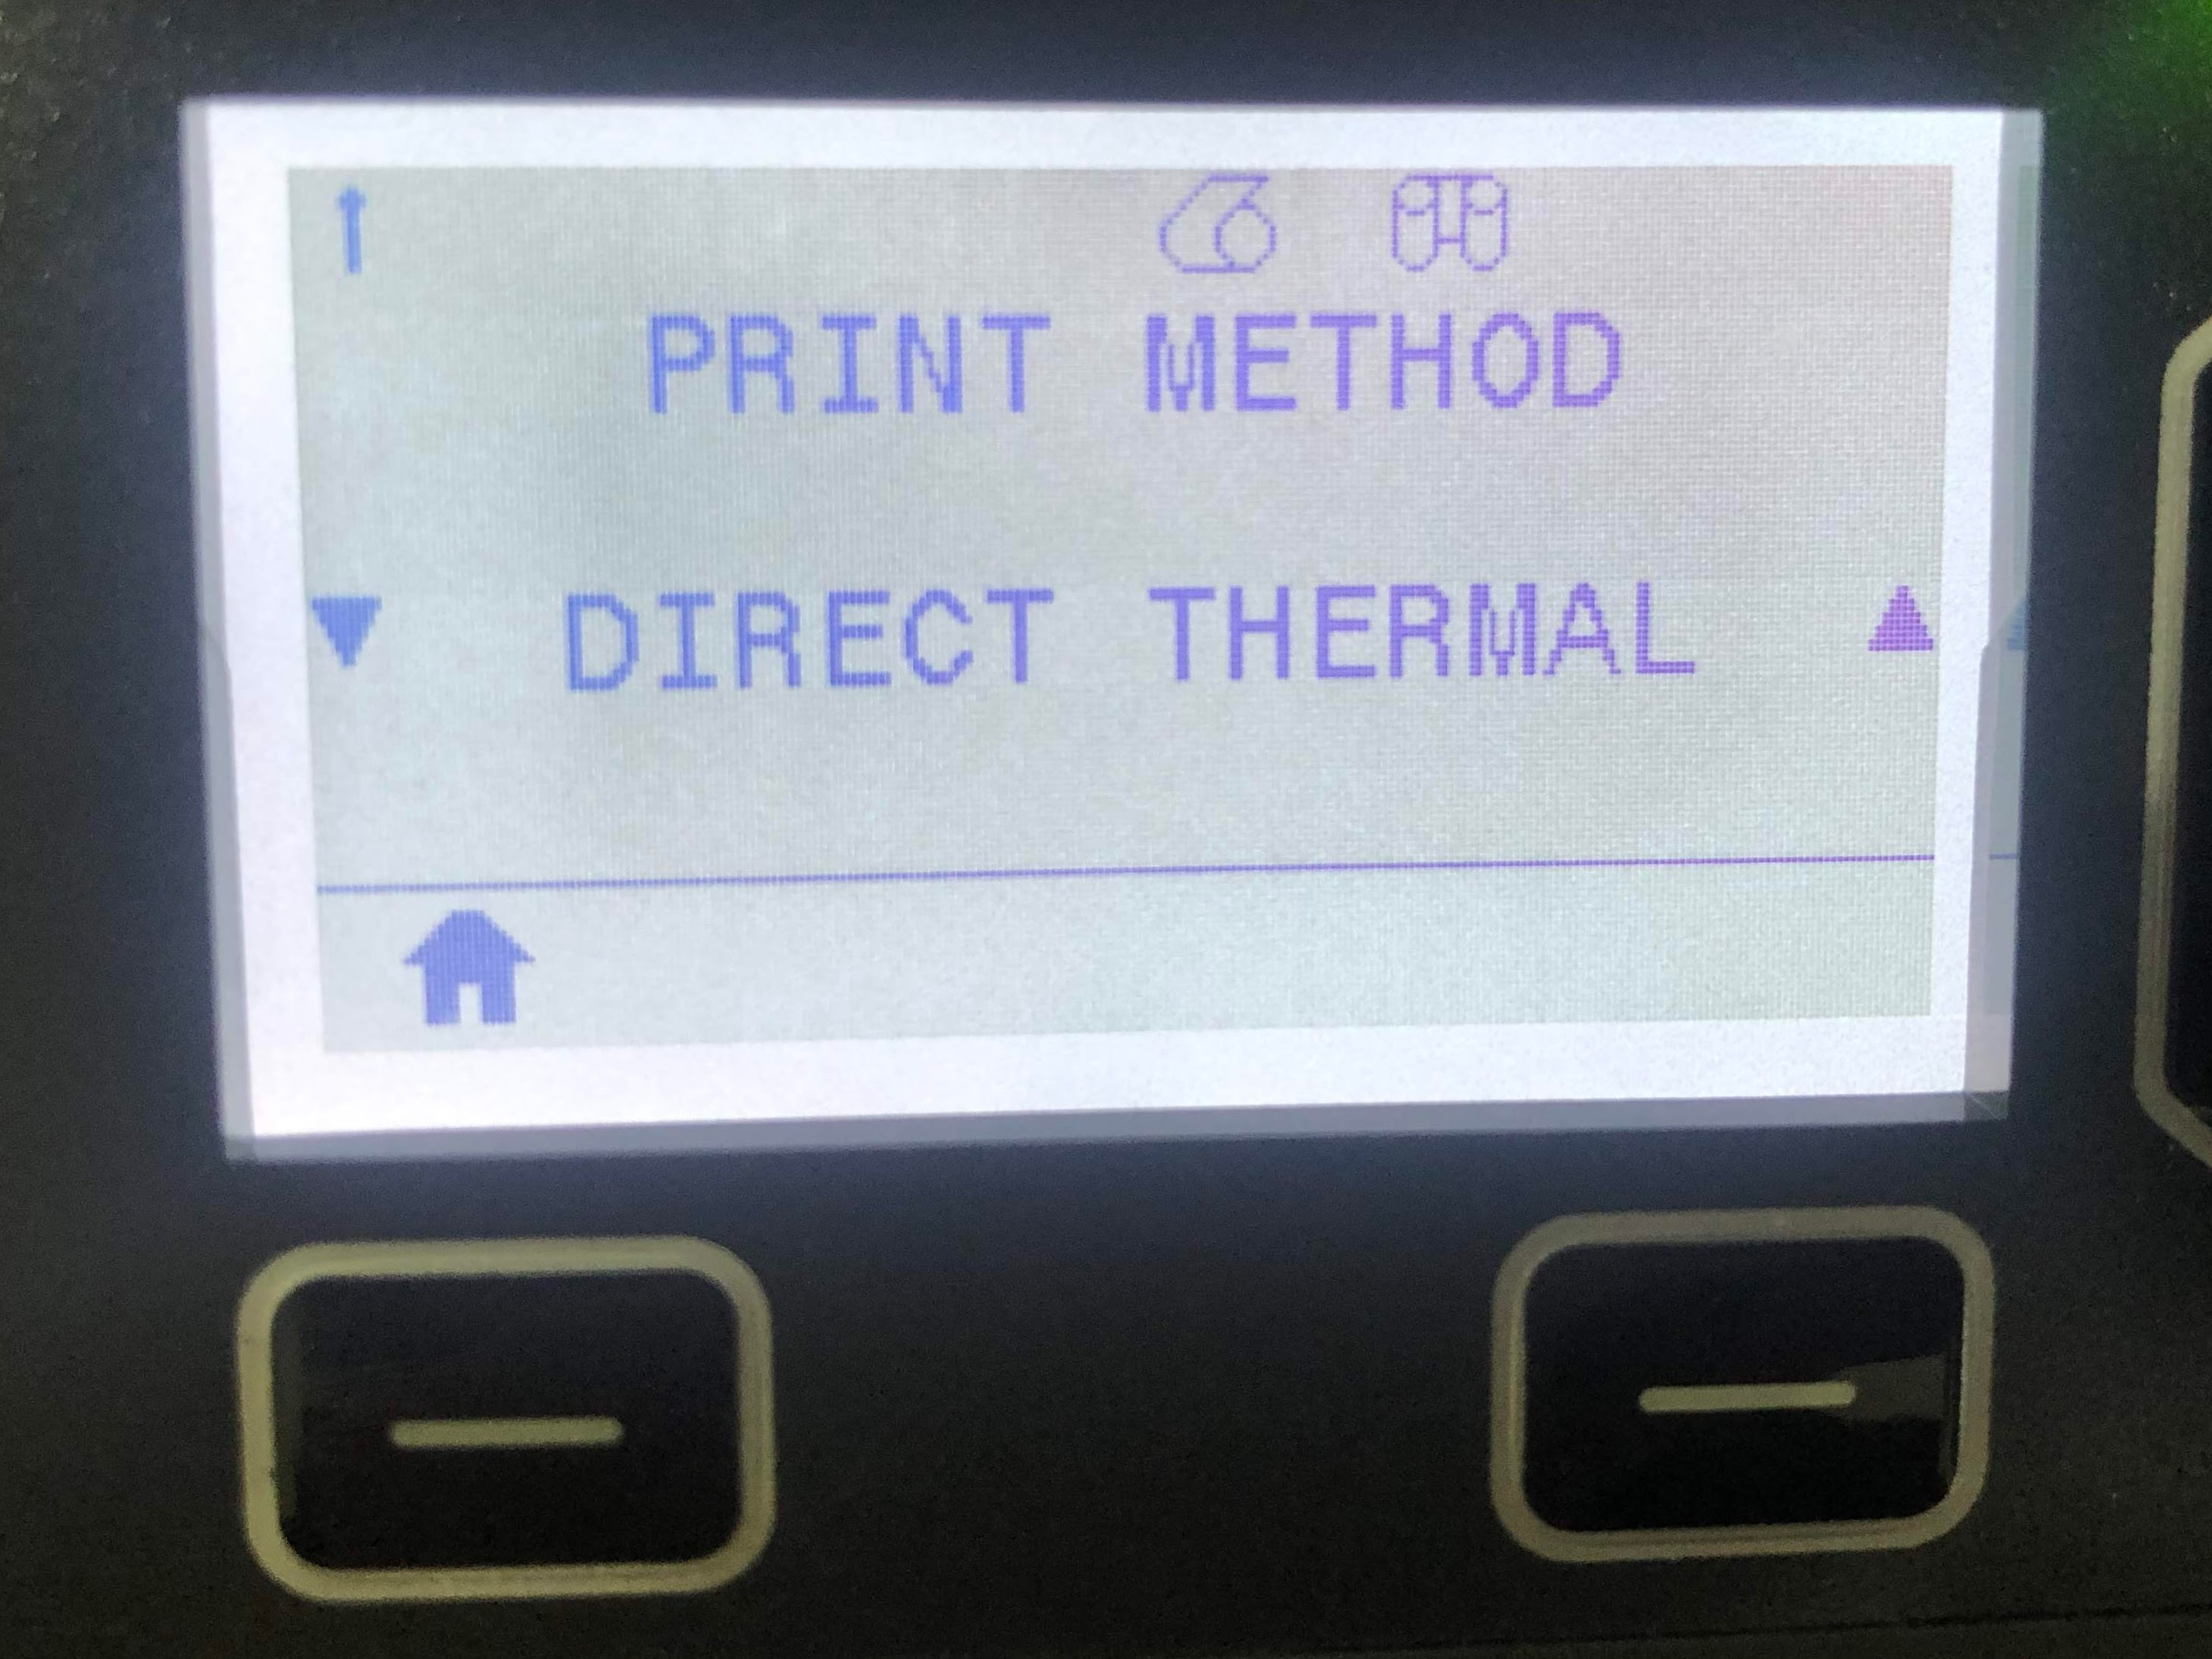 Direct Thermal